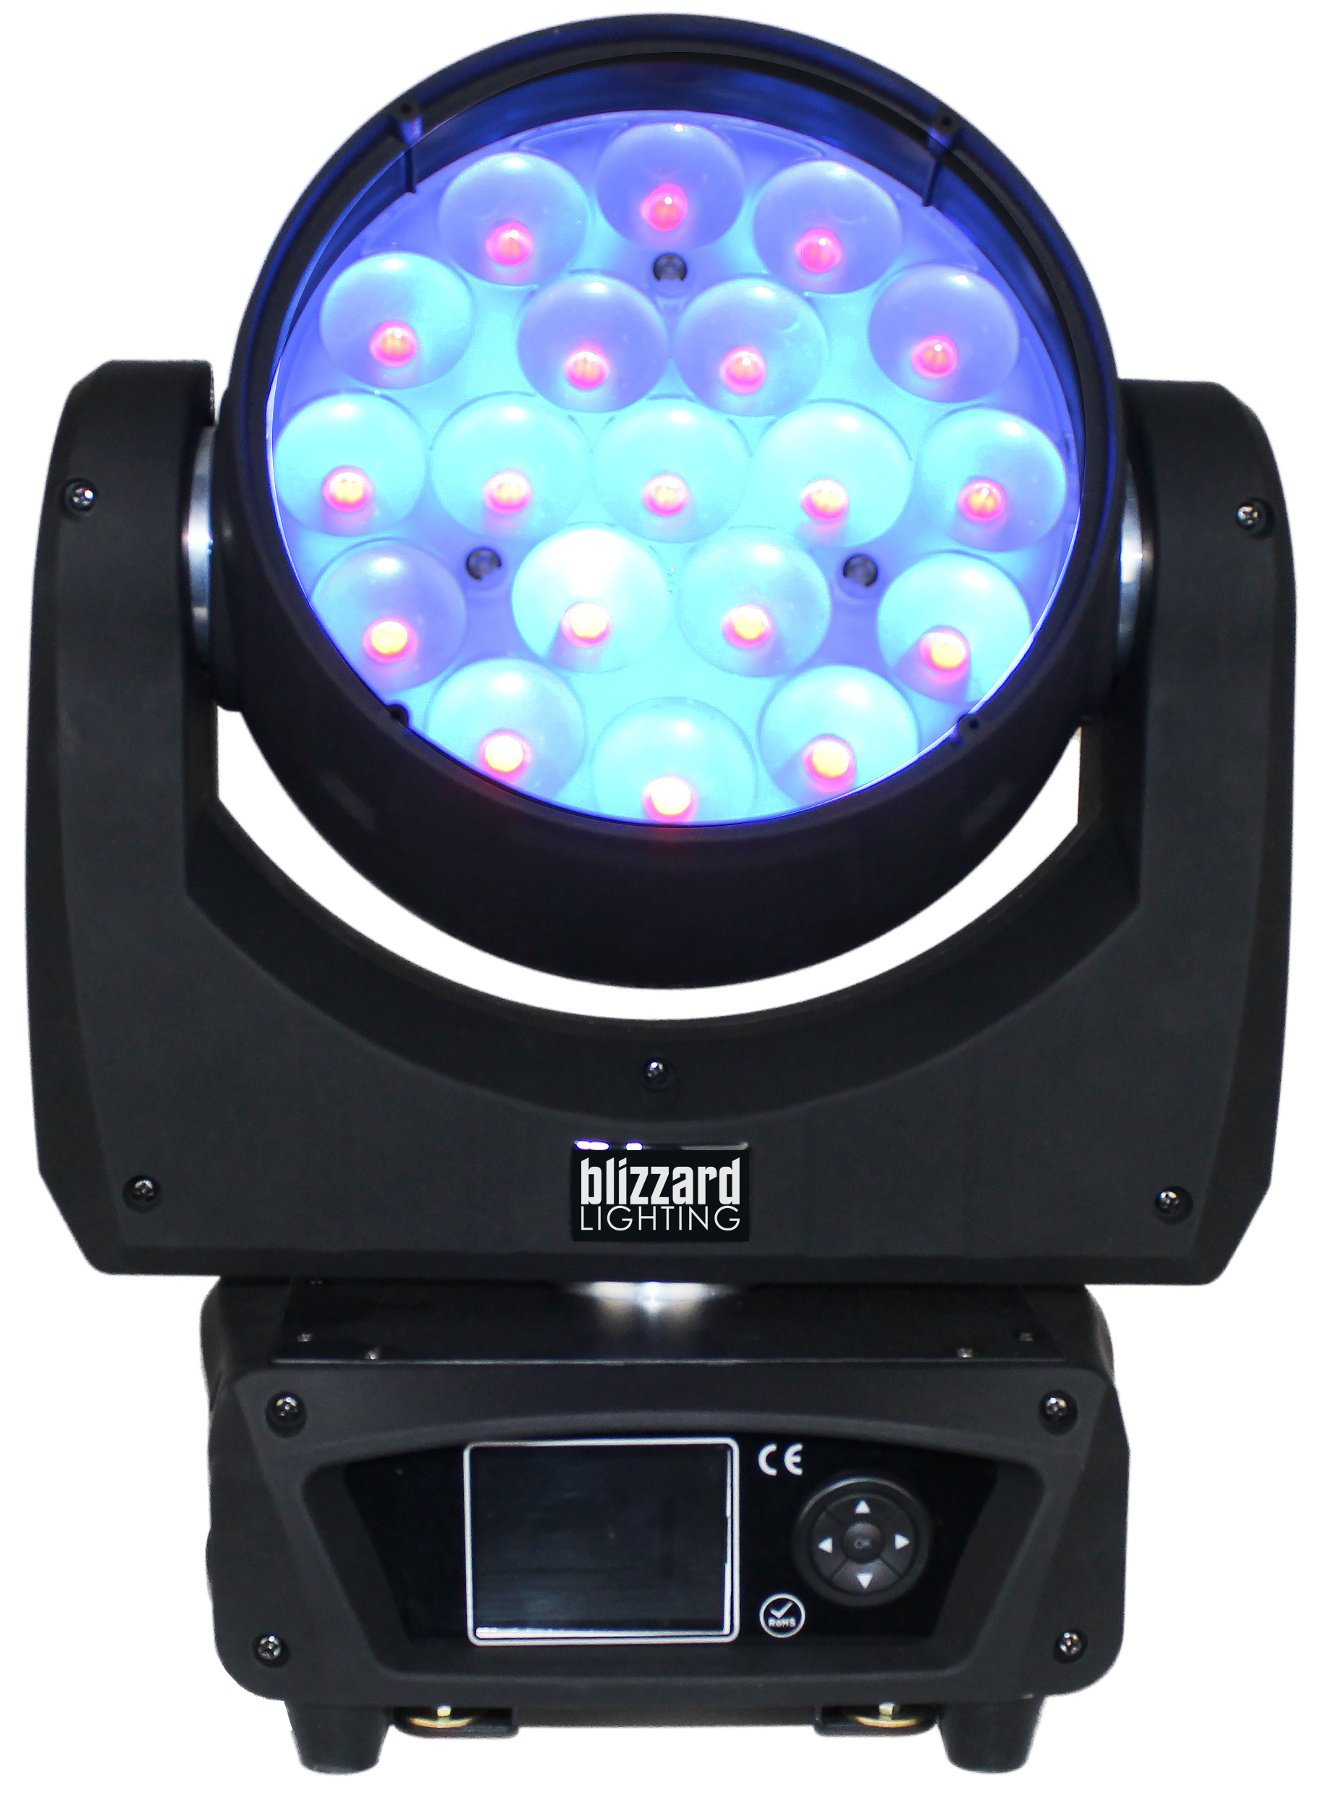 19x 15W RGBW LED Moving Wash Light with Pixel Control